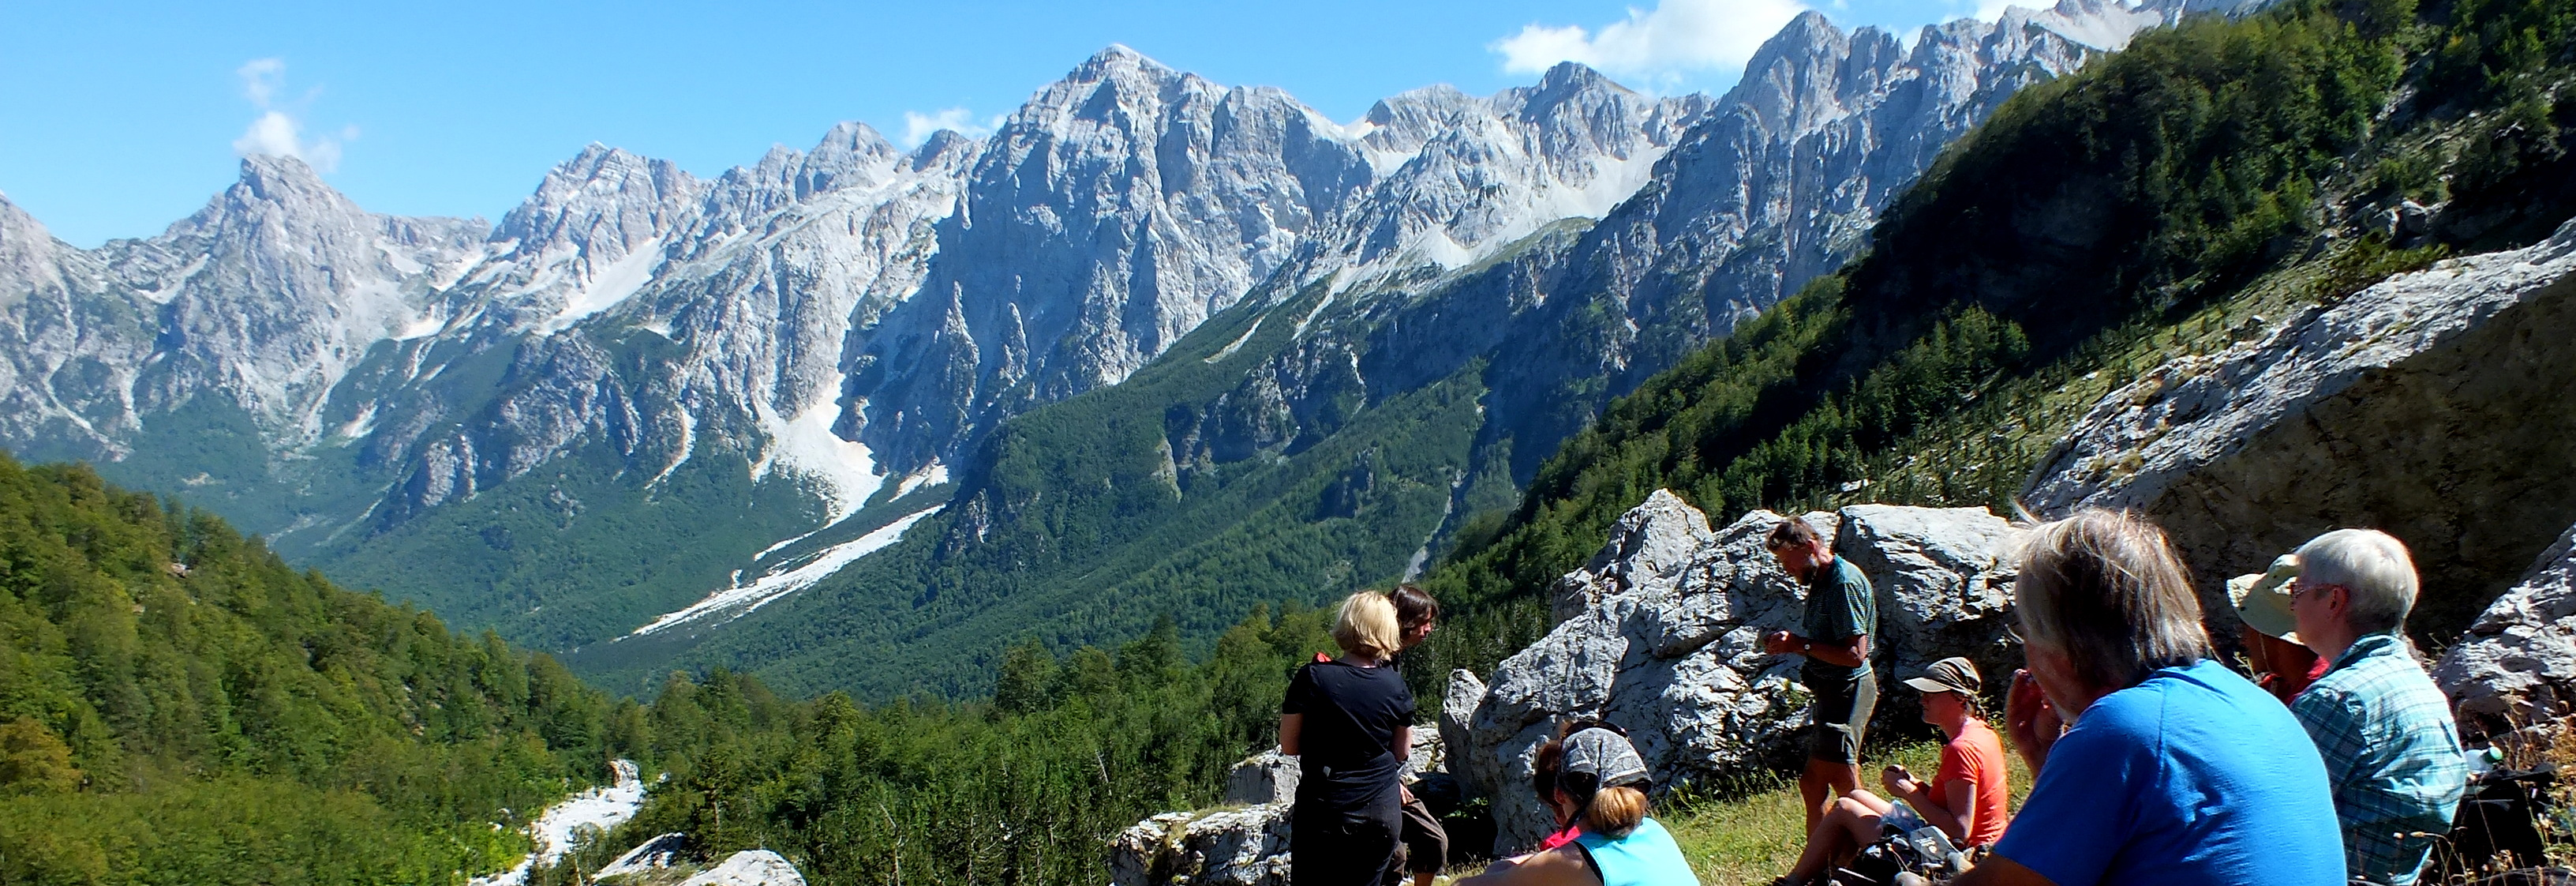 National Park Valbona And Valbona National Park